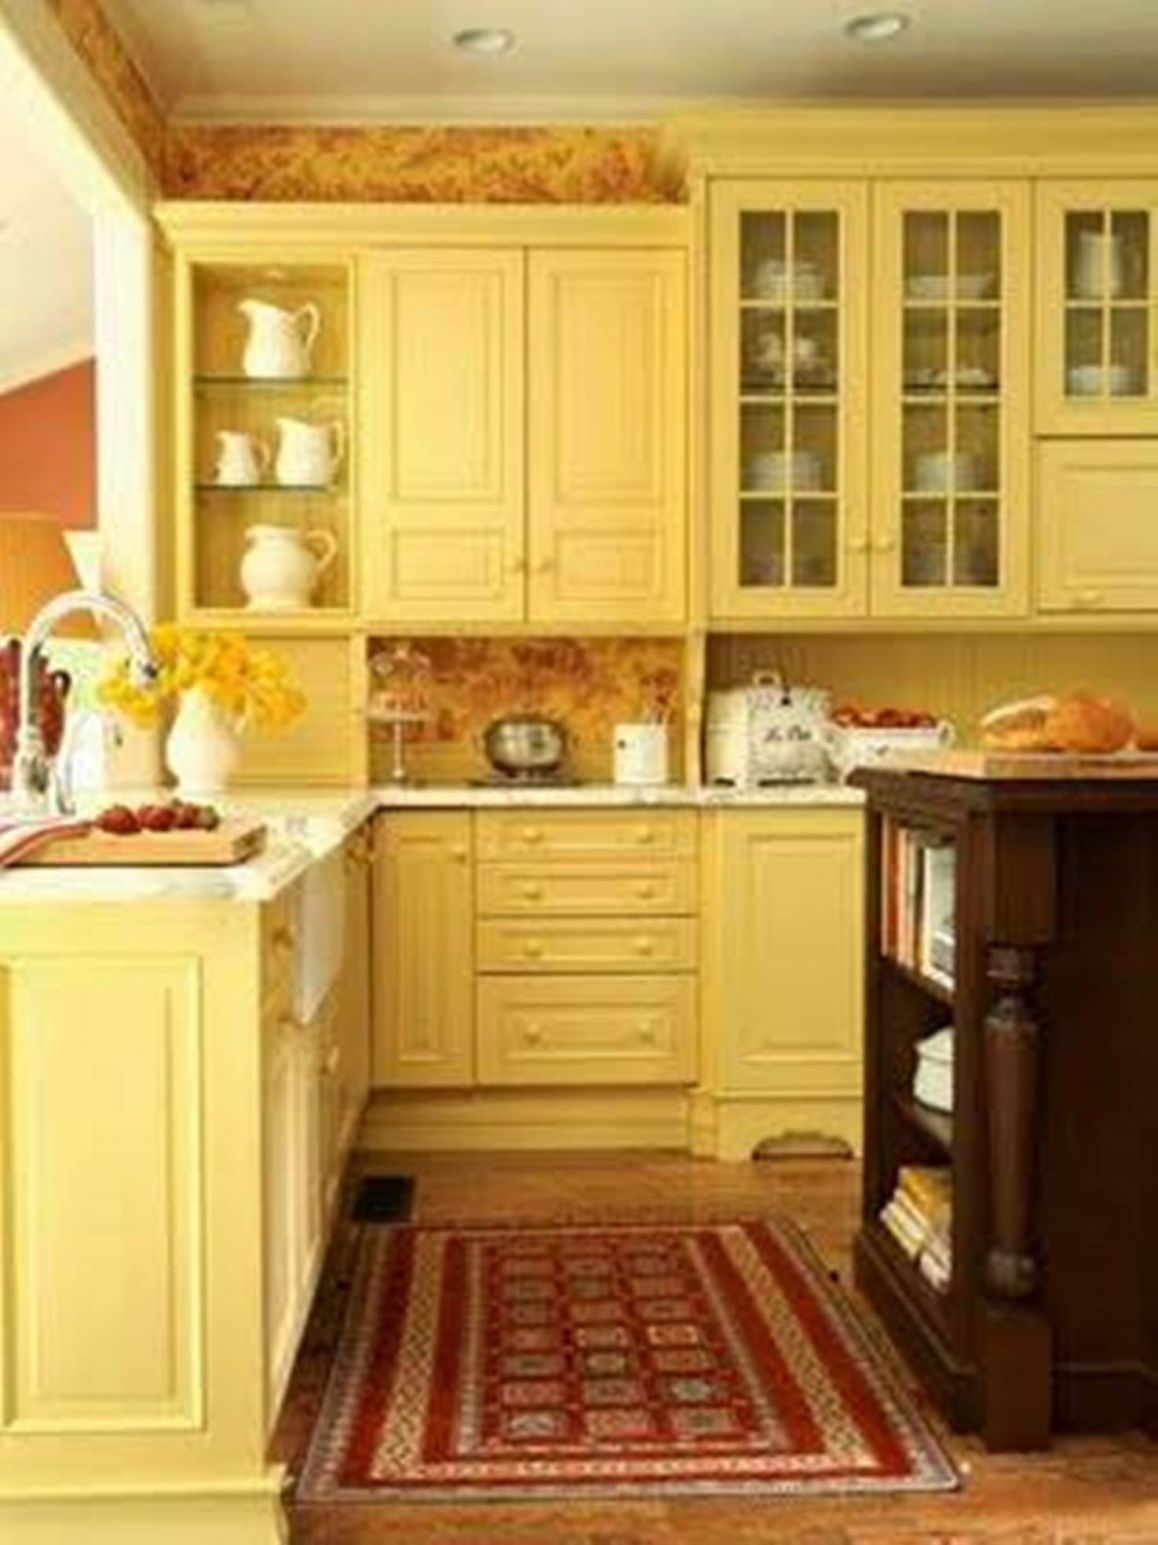 2019 Pictures Of Kitchens Painted Yellow Kitchen Floor Vinyl Ideas